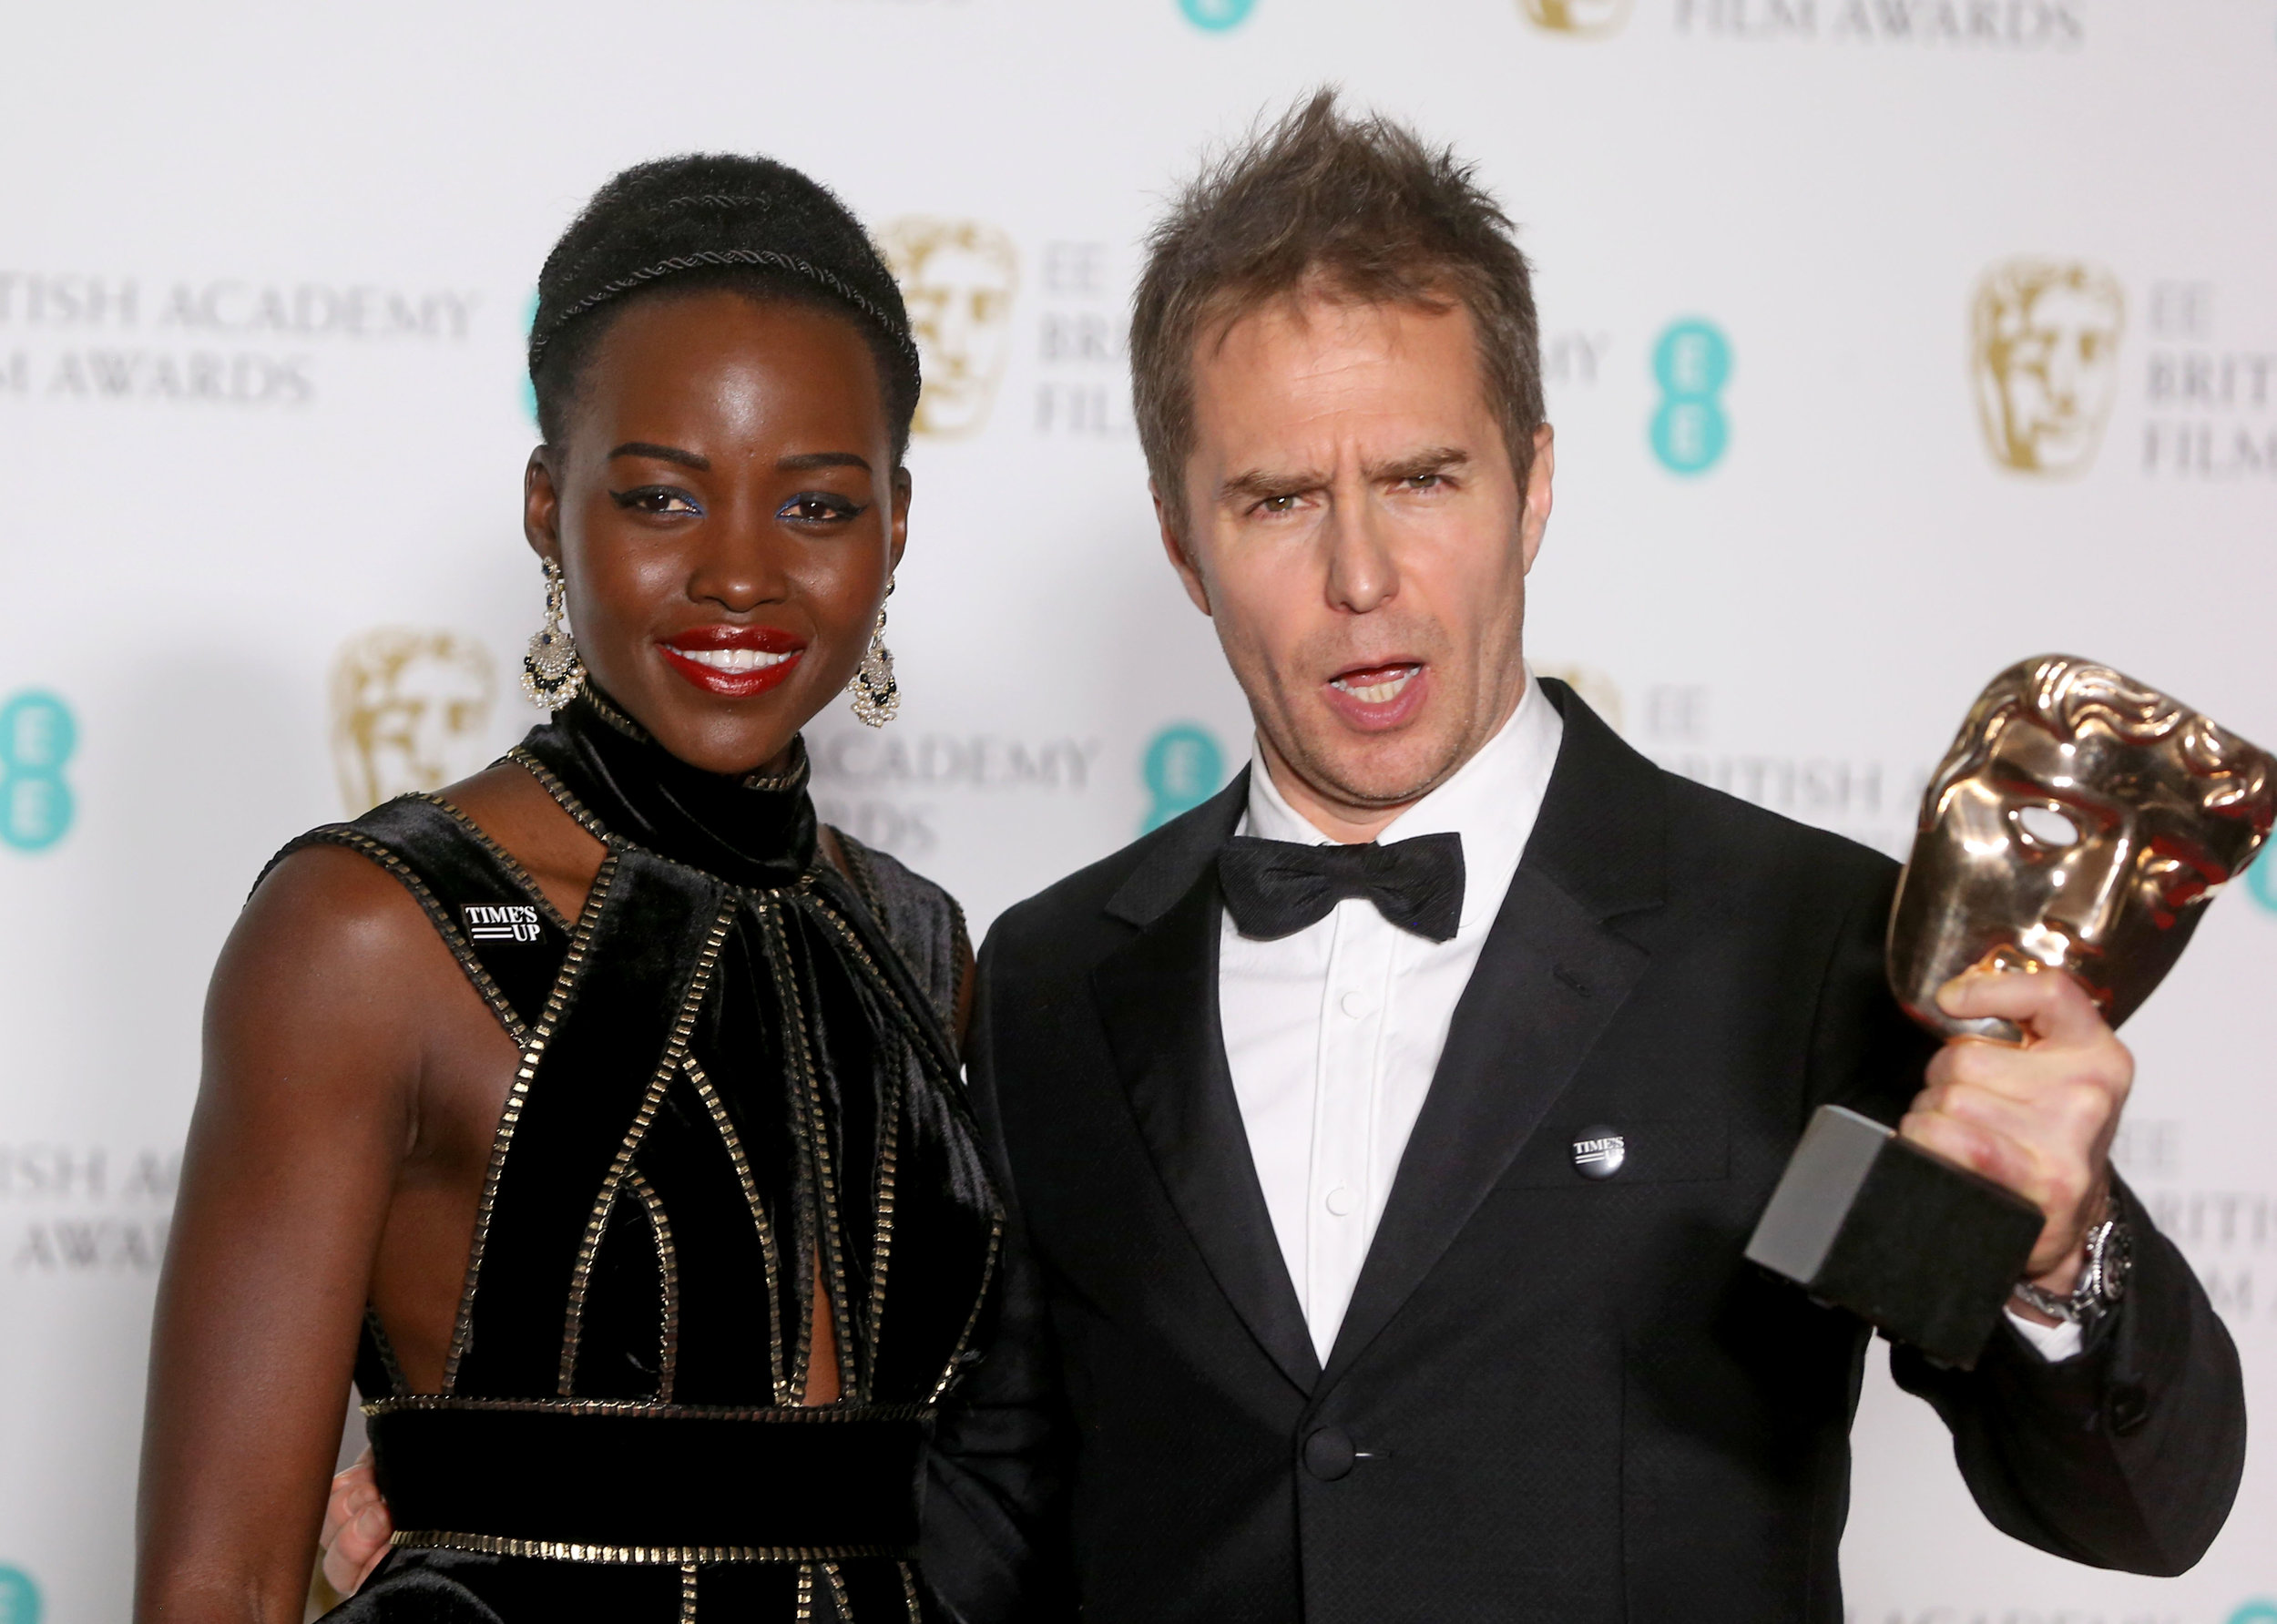 Lupita Nyong'o and Sam Rockwell